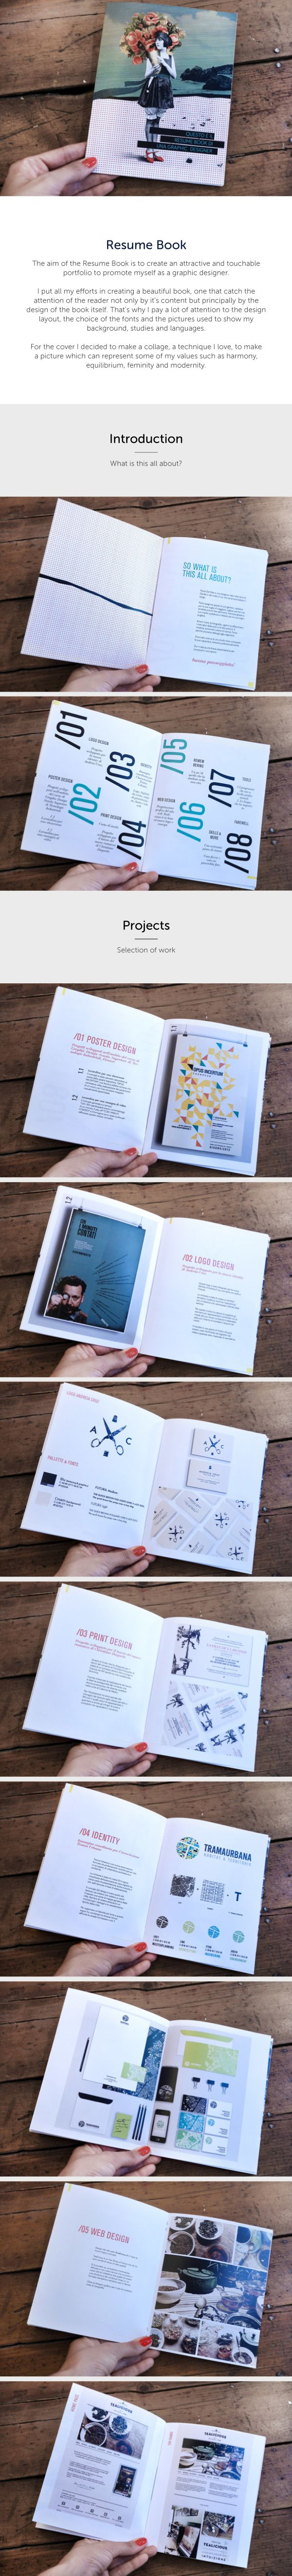 best images about power portfolios student resume and portfolio design clean white space and beautiful photos